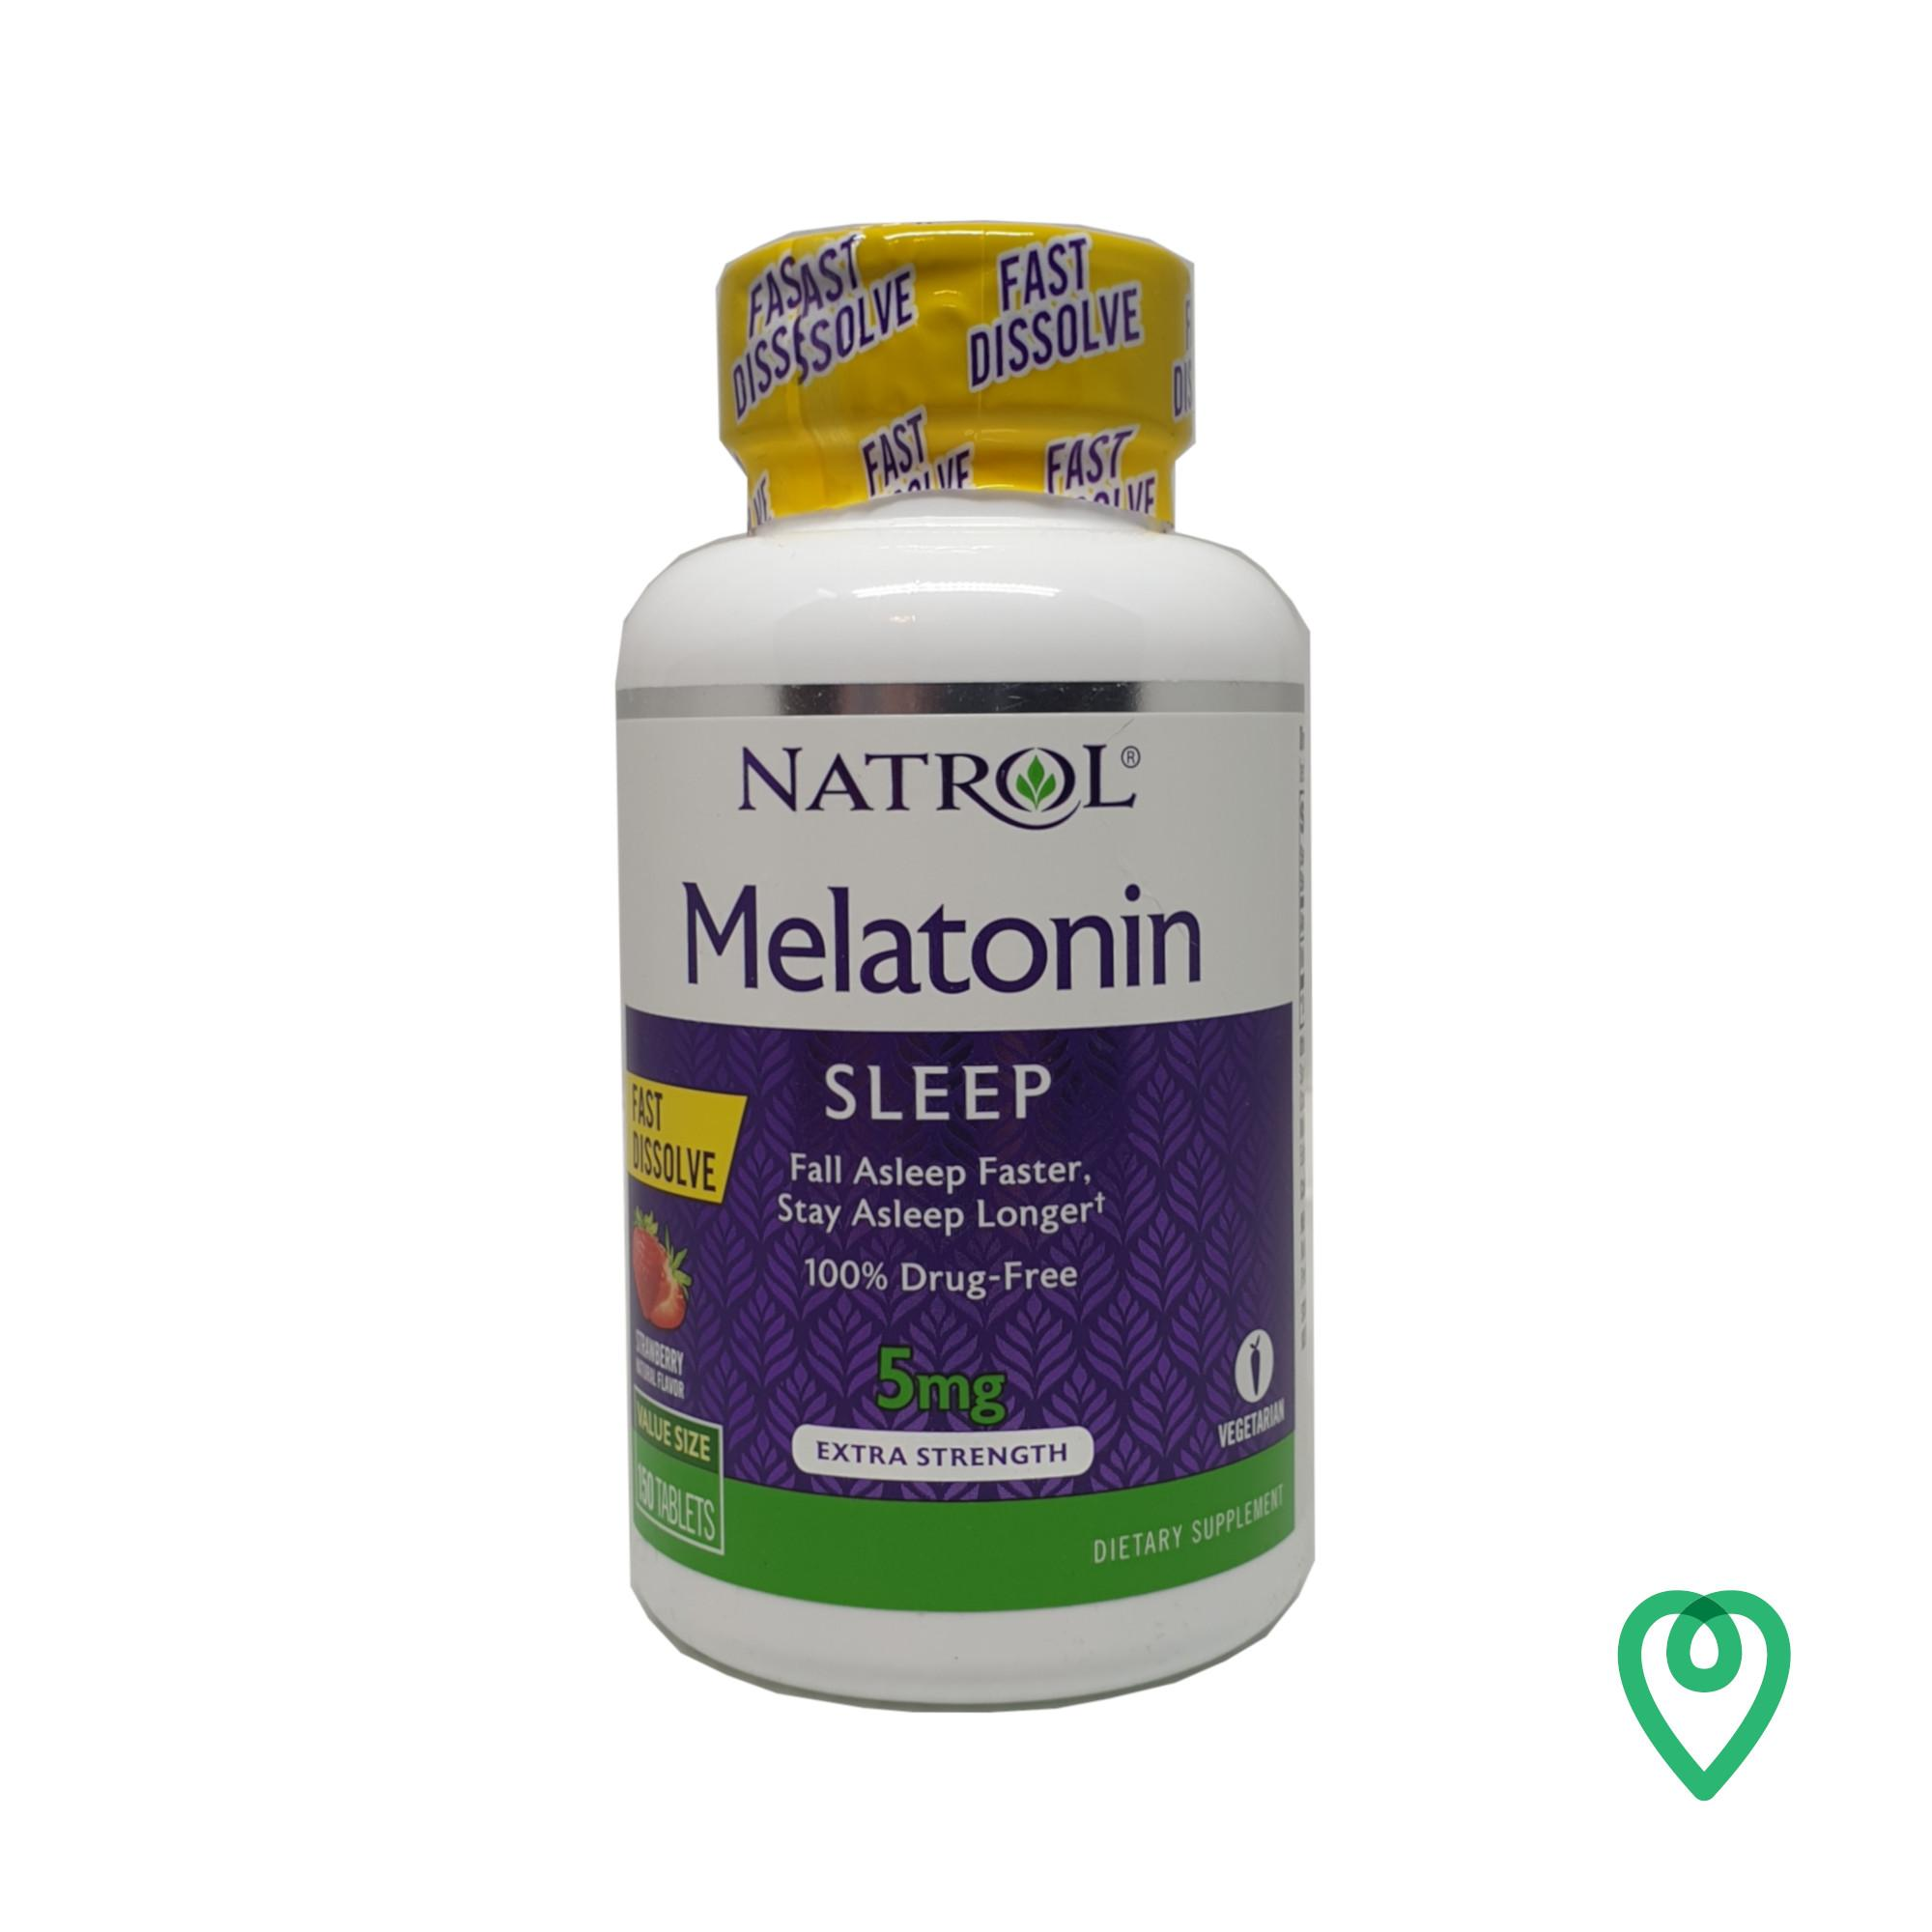 NATROL MELATONIN FAST DISSOVLE 150 TABLETS